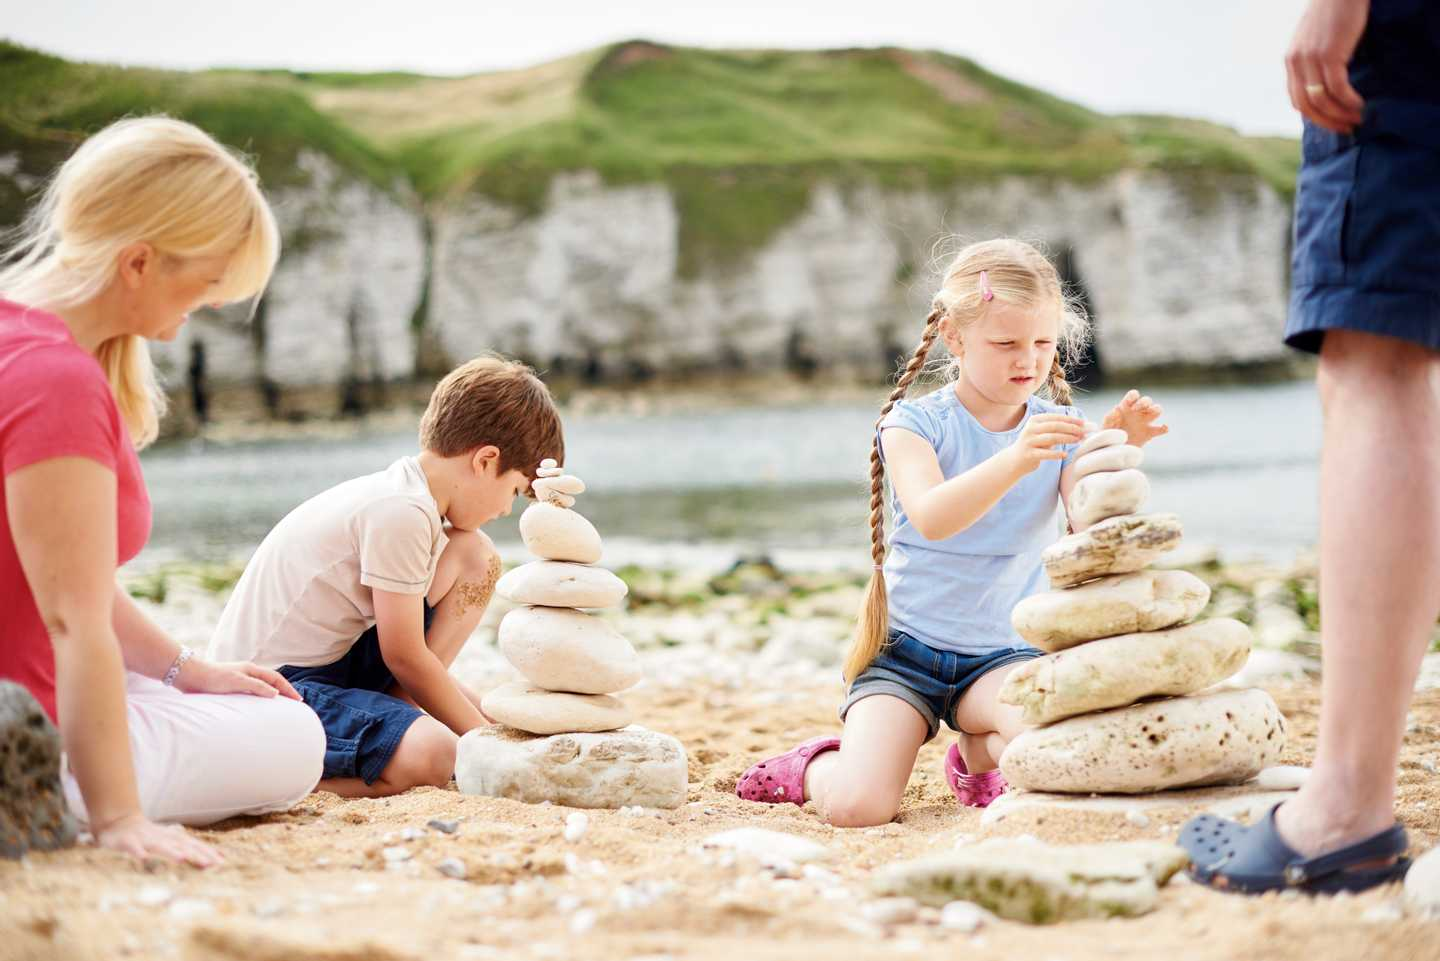 A family building mounds with white, round stones on the beach together with the sea and white cliffs in the background